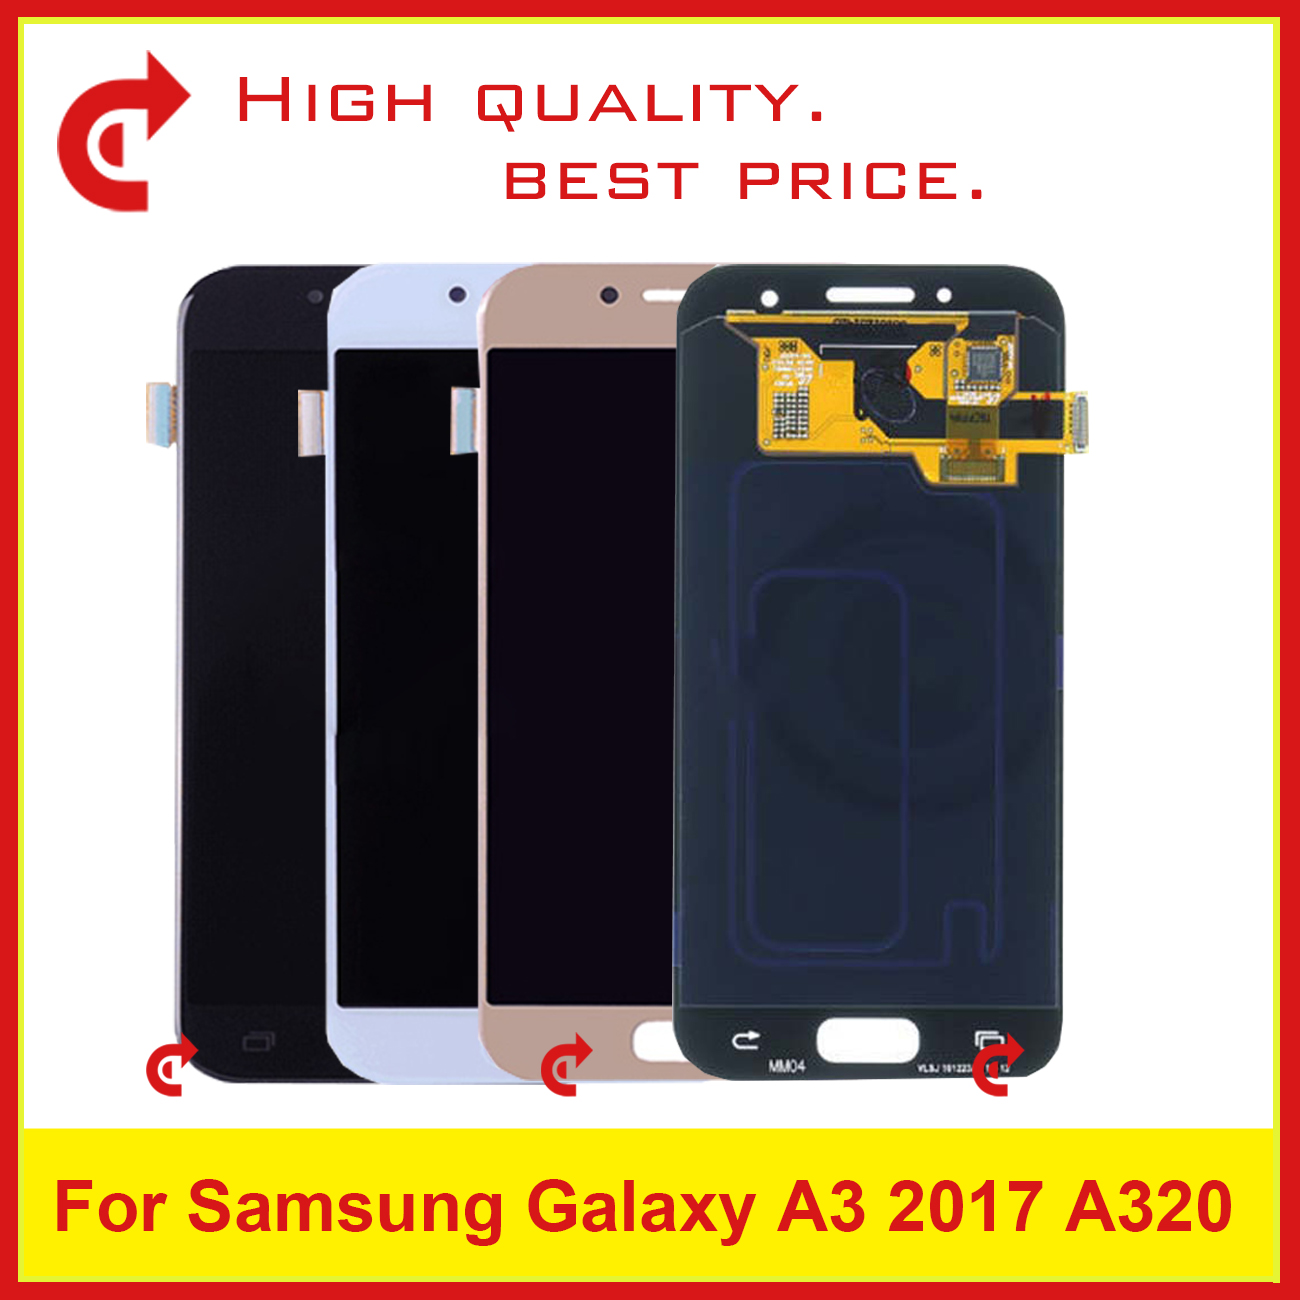 10Pcs/lot DHL 4.7 For Samsung Galaxy A3 2017 A320 A320F SM-A320F Full Lcd Display With Touch Screen Digitizer Assembly Complete10Pcs/lot DHL 4.7 For Samsung Galaxy A3 2017 A320 A320F SM-A320F Full Lcd Display With Touch Screen Digitizer Assembly Complete